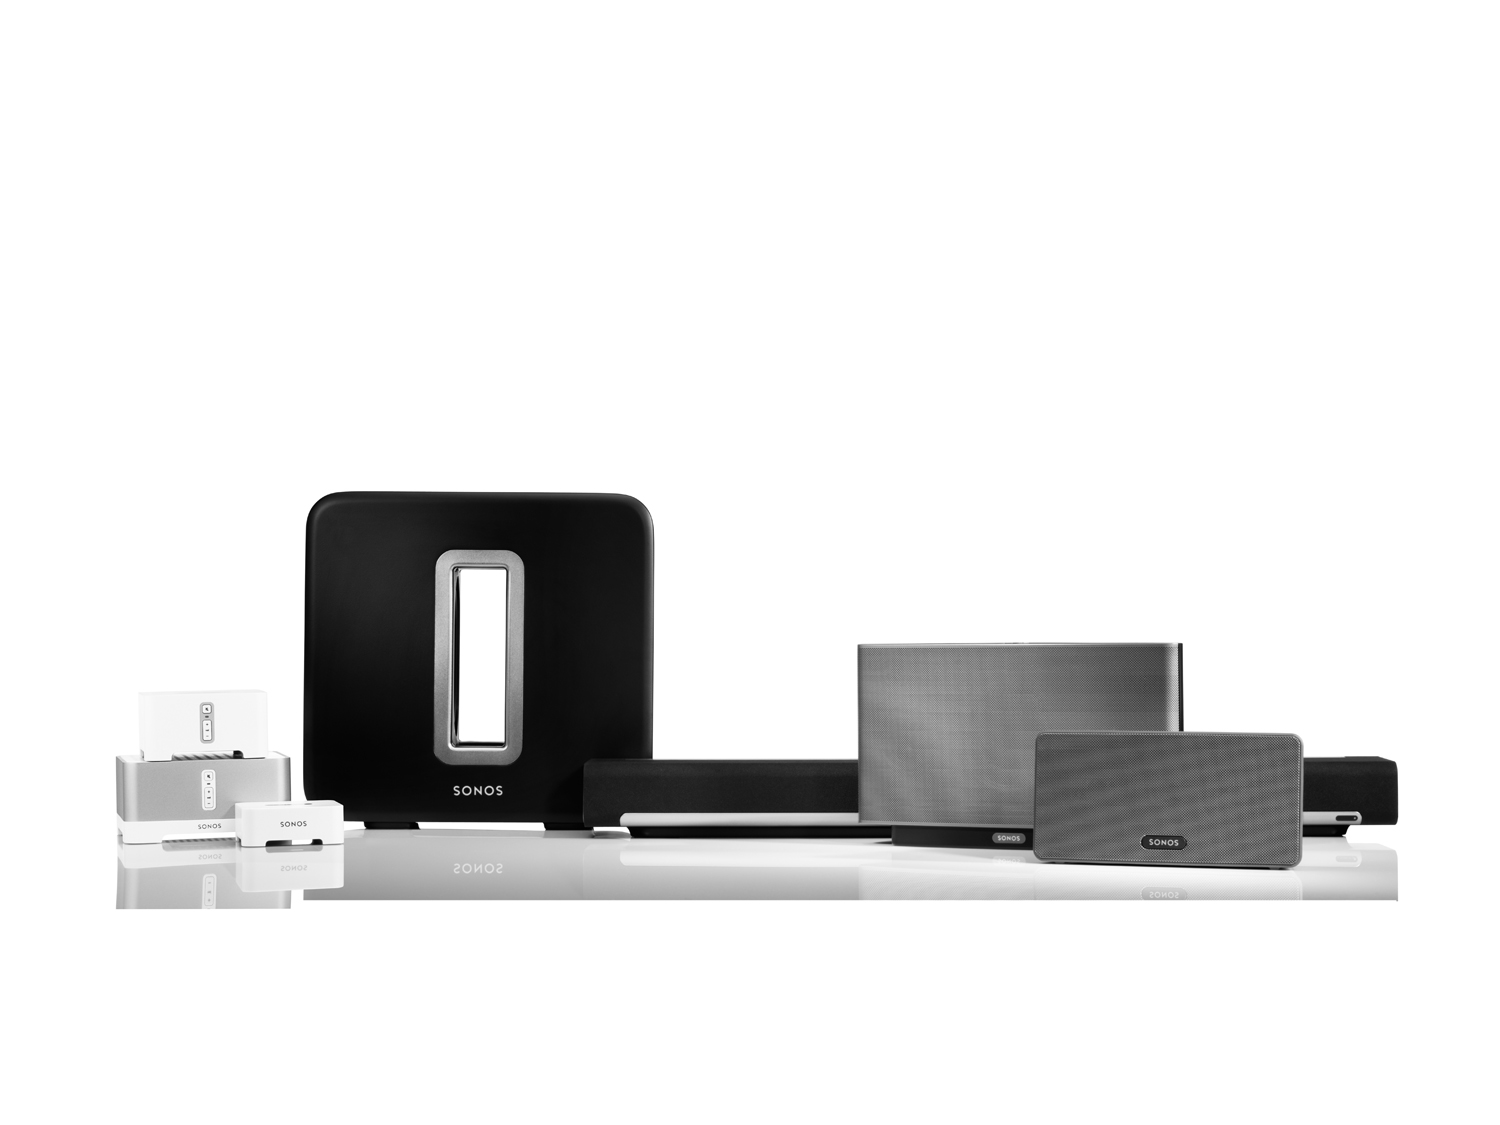 photo of Sonos products